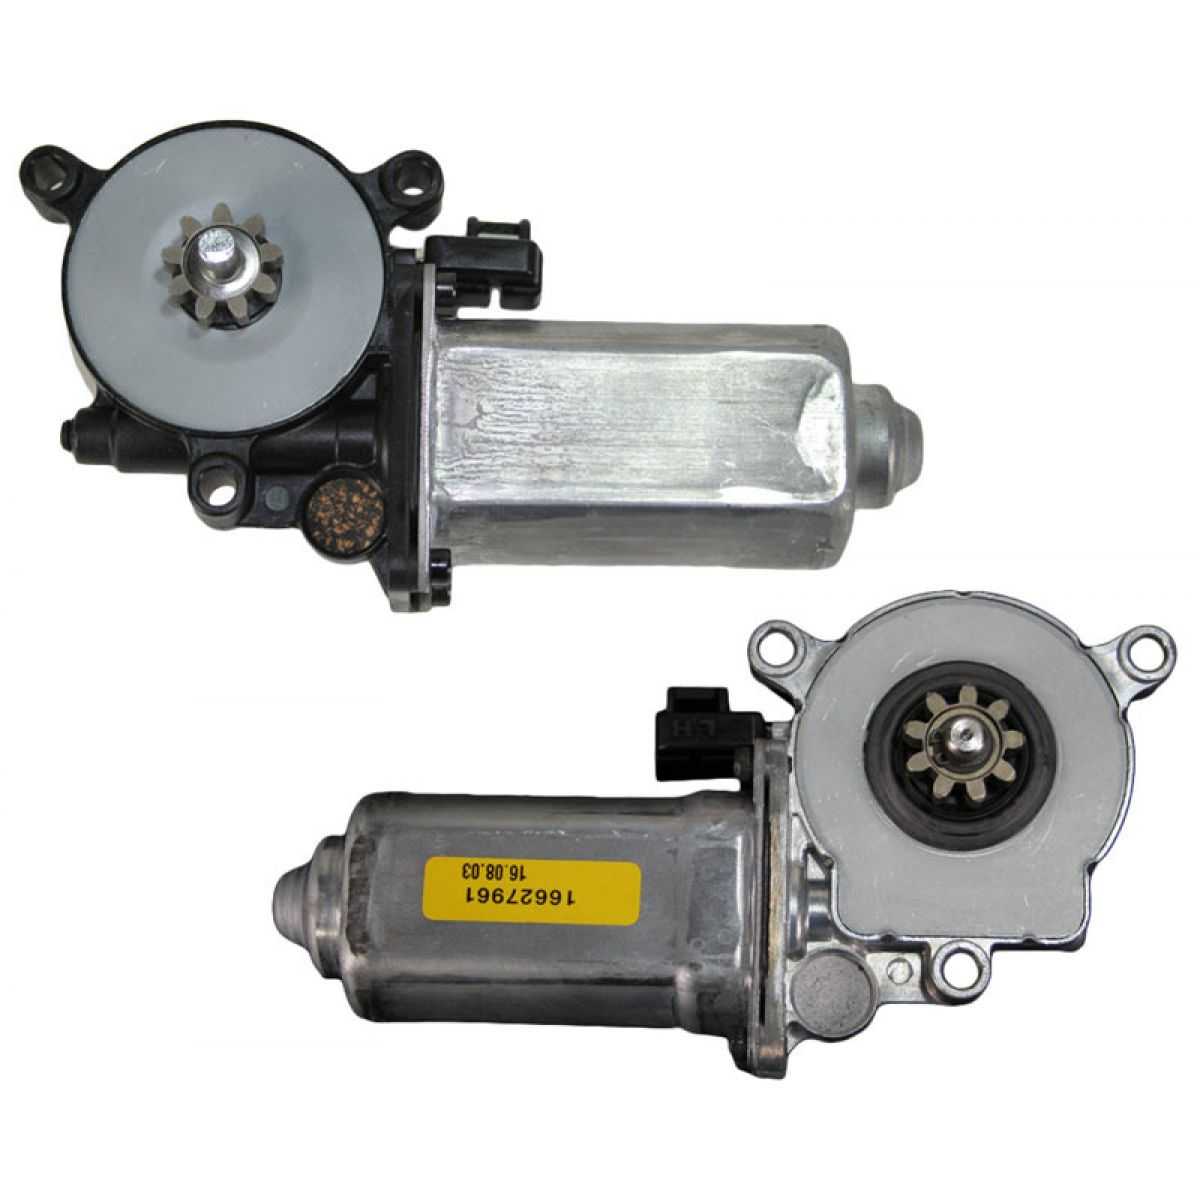 Power Window Lift Motors Pair Set For Buick Cadillac Olds Pontiac